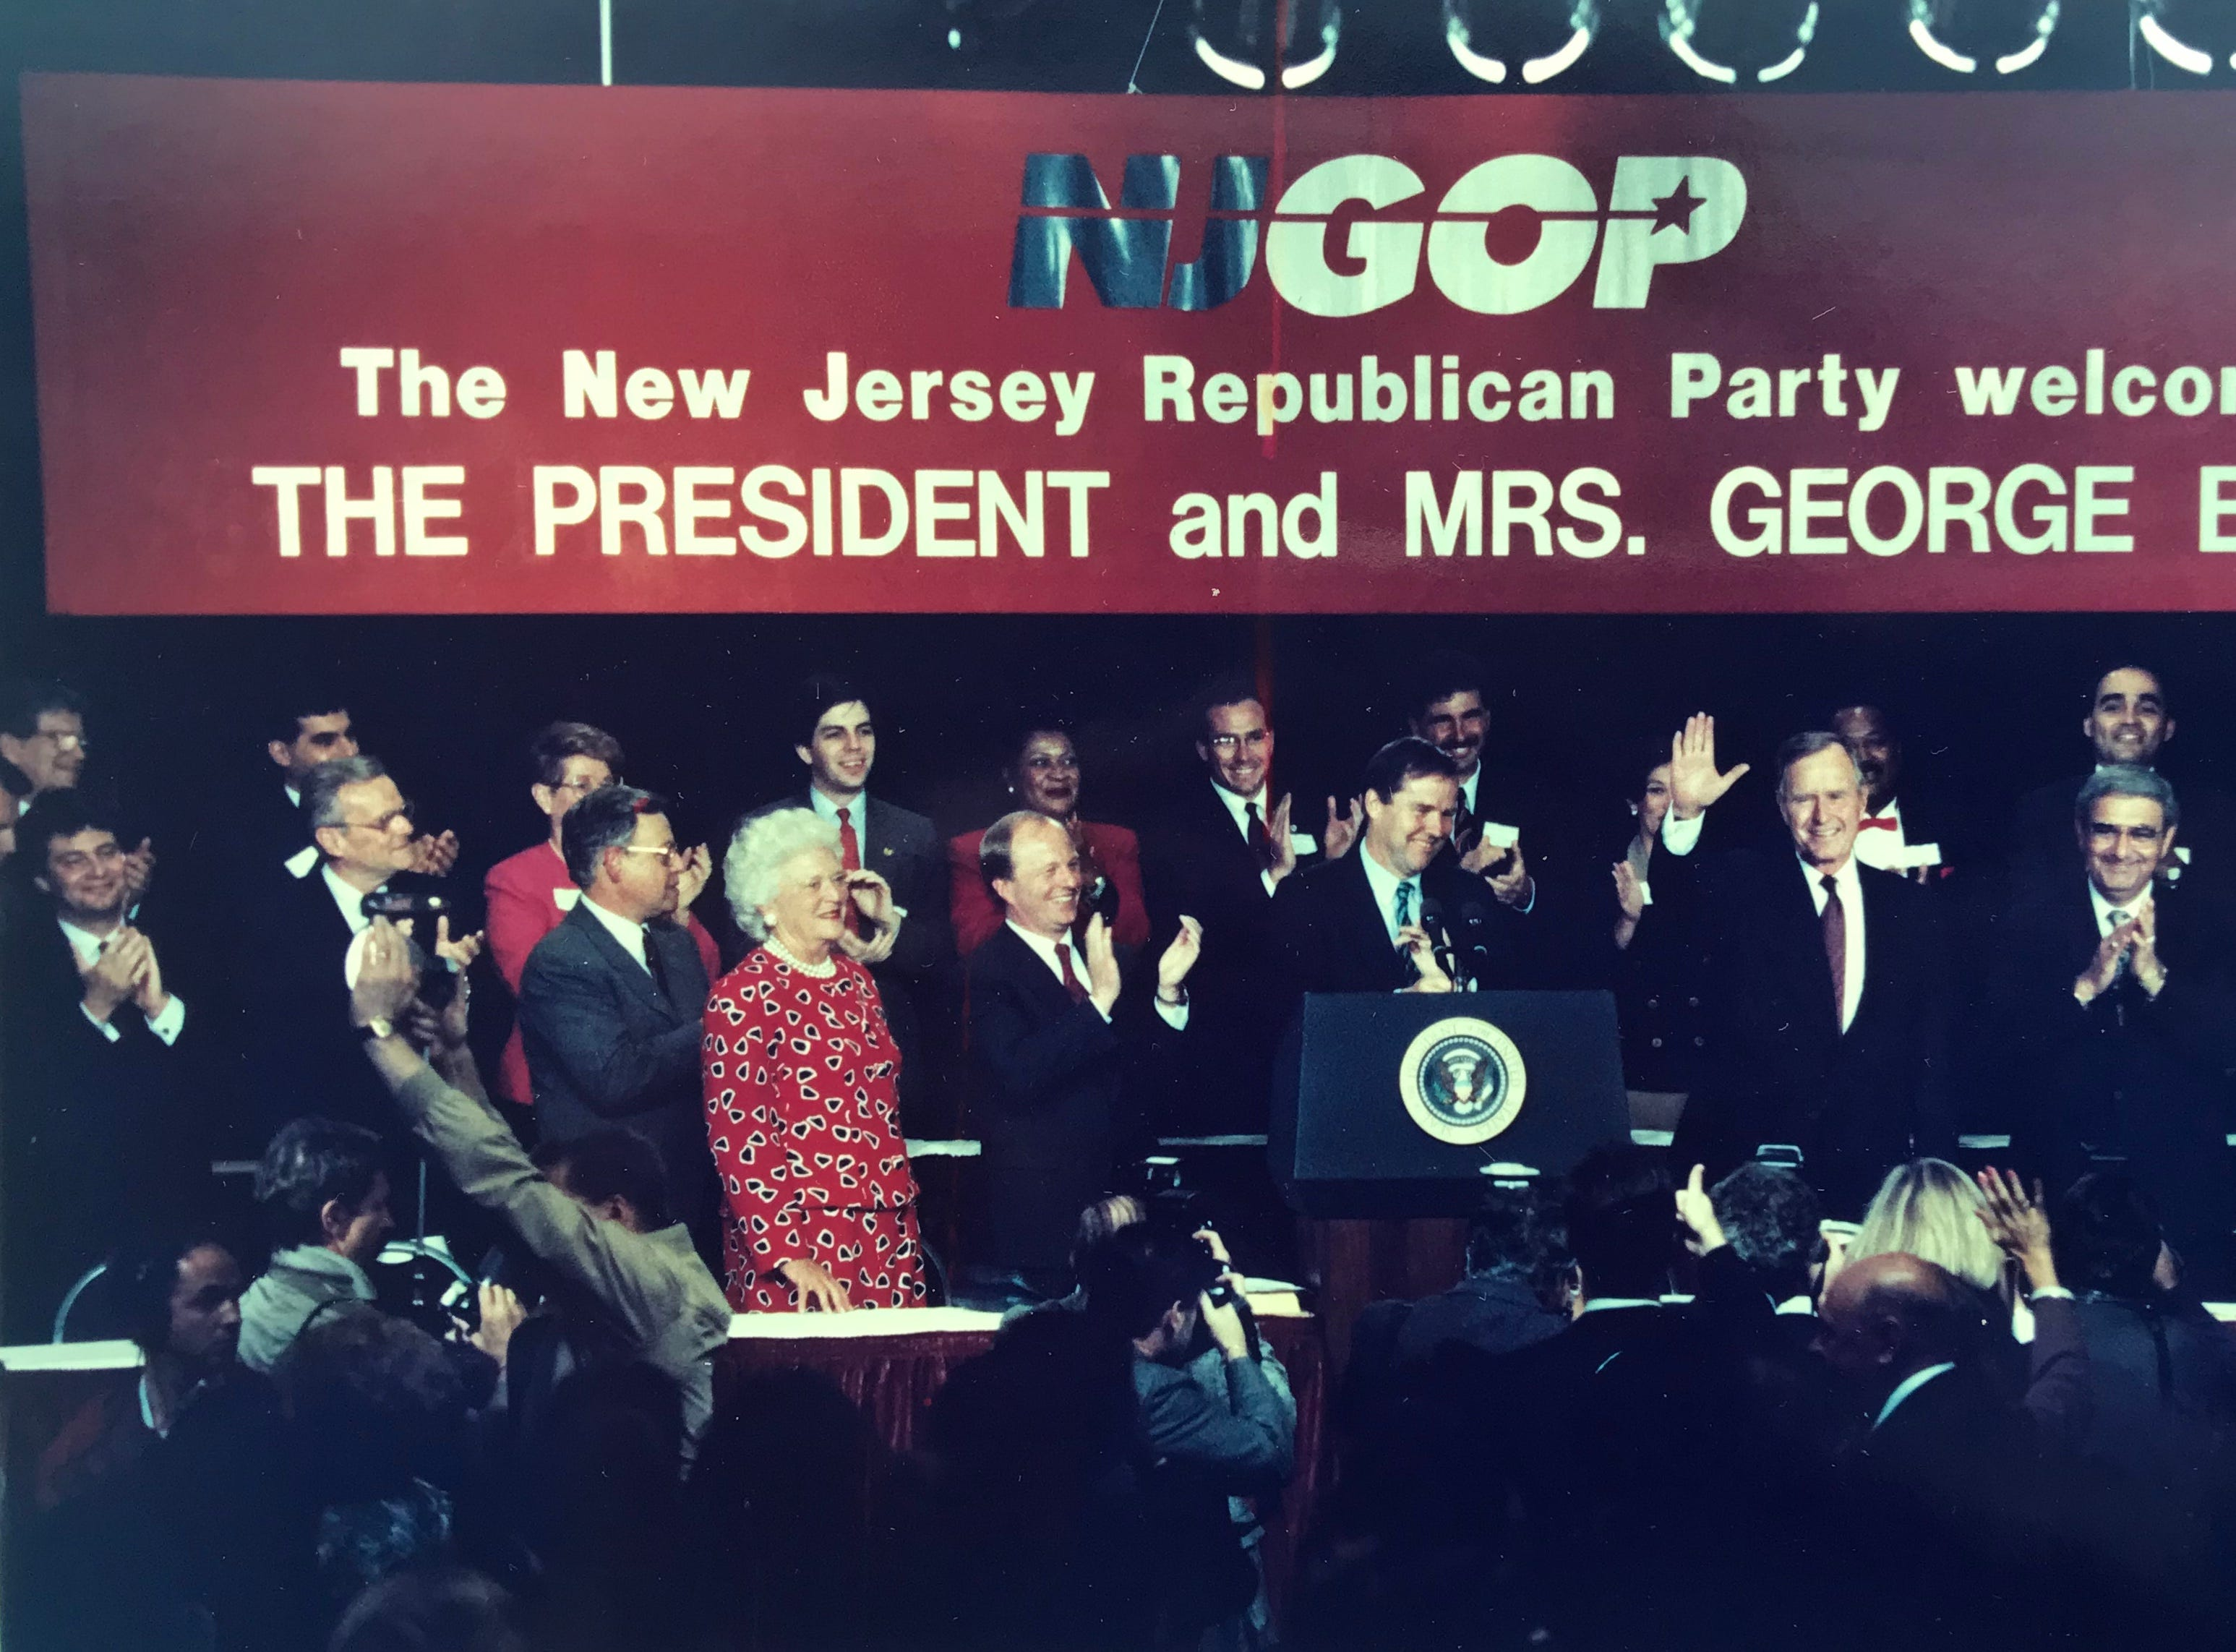 President George Bush waves to the GOP dinner crowd gathered in East Brunswick for a fundraiser on Sept. 24, 1991.